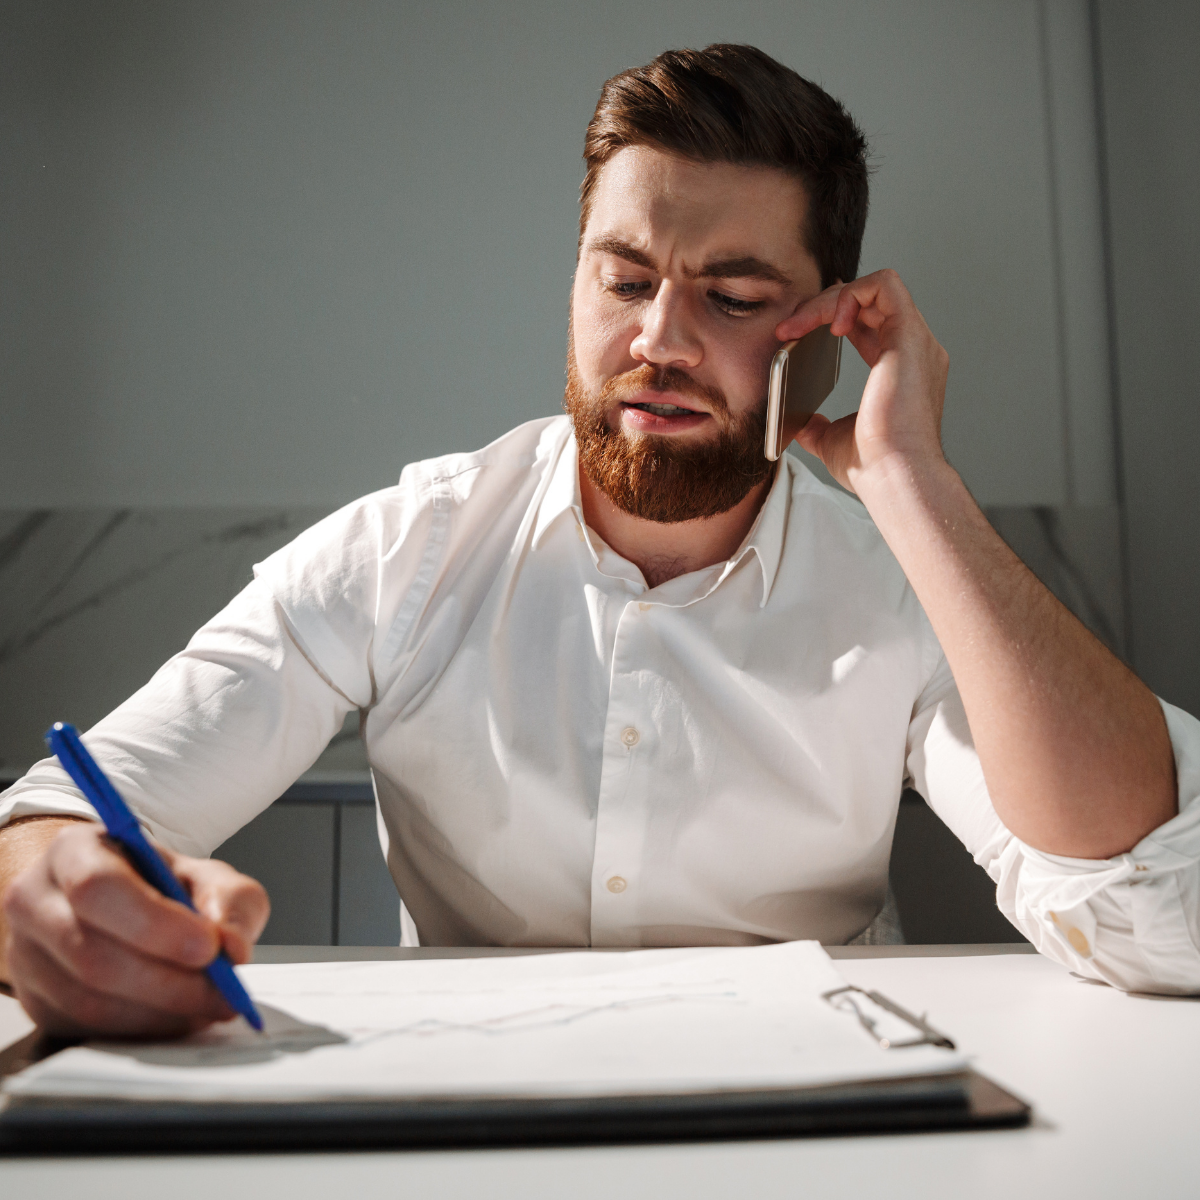 How to balance worklife, studying and anxiety